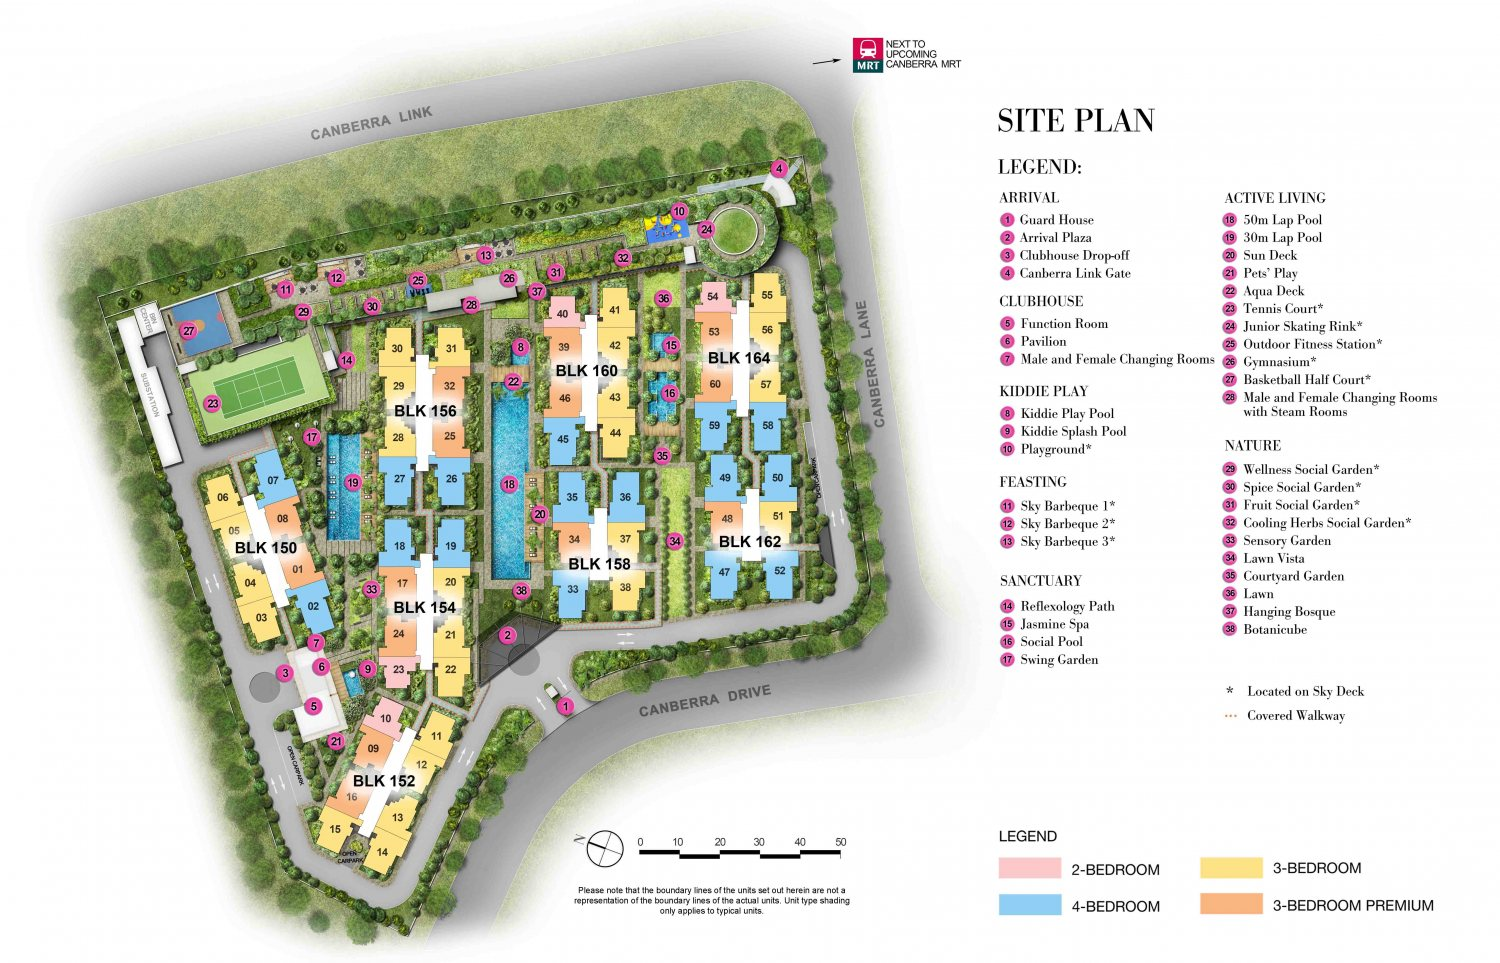 The Brownstone Site Plan